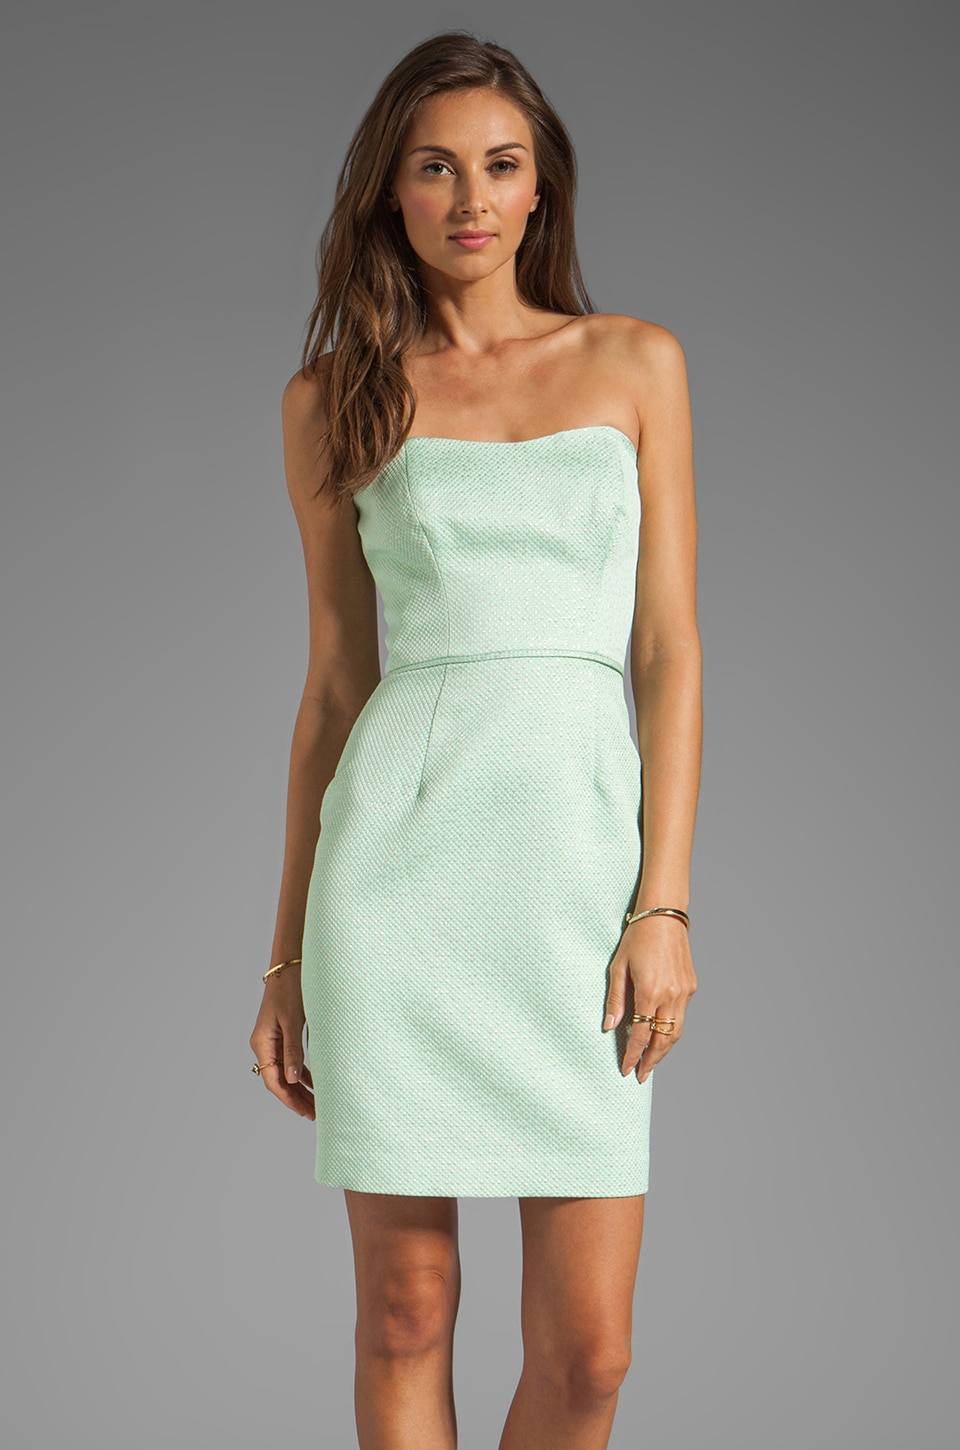 Shoshanna Janie Dress in Mint/Gold